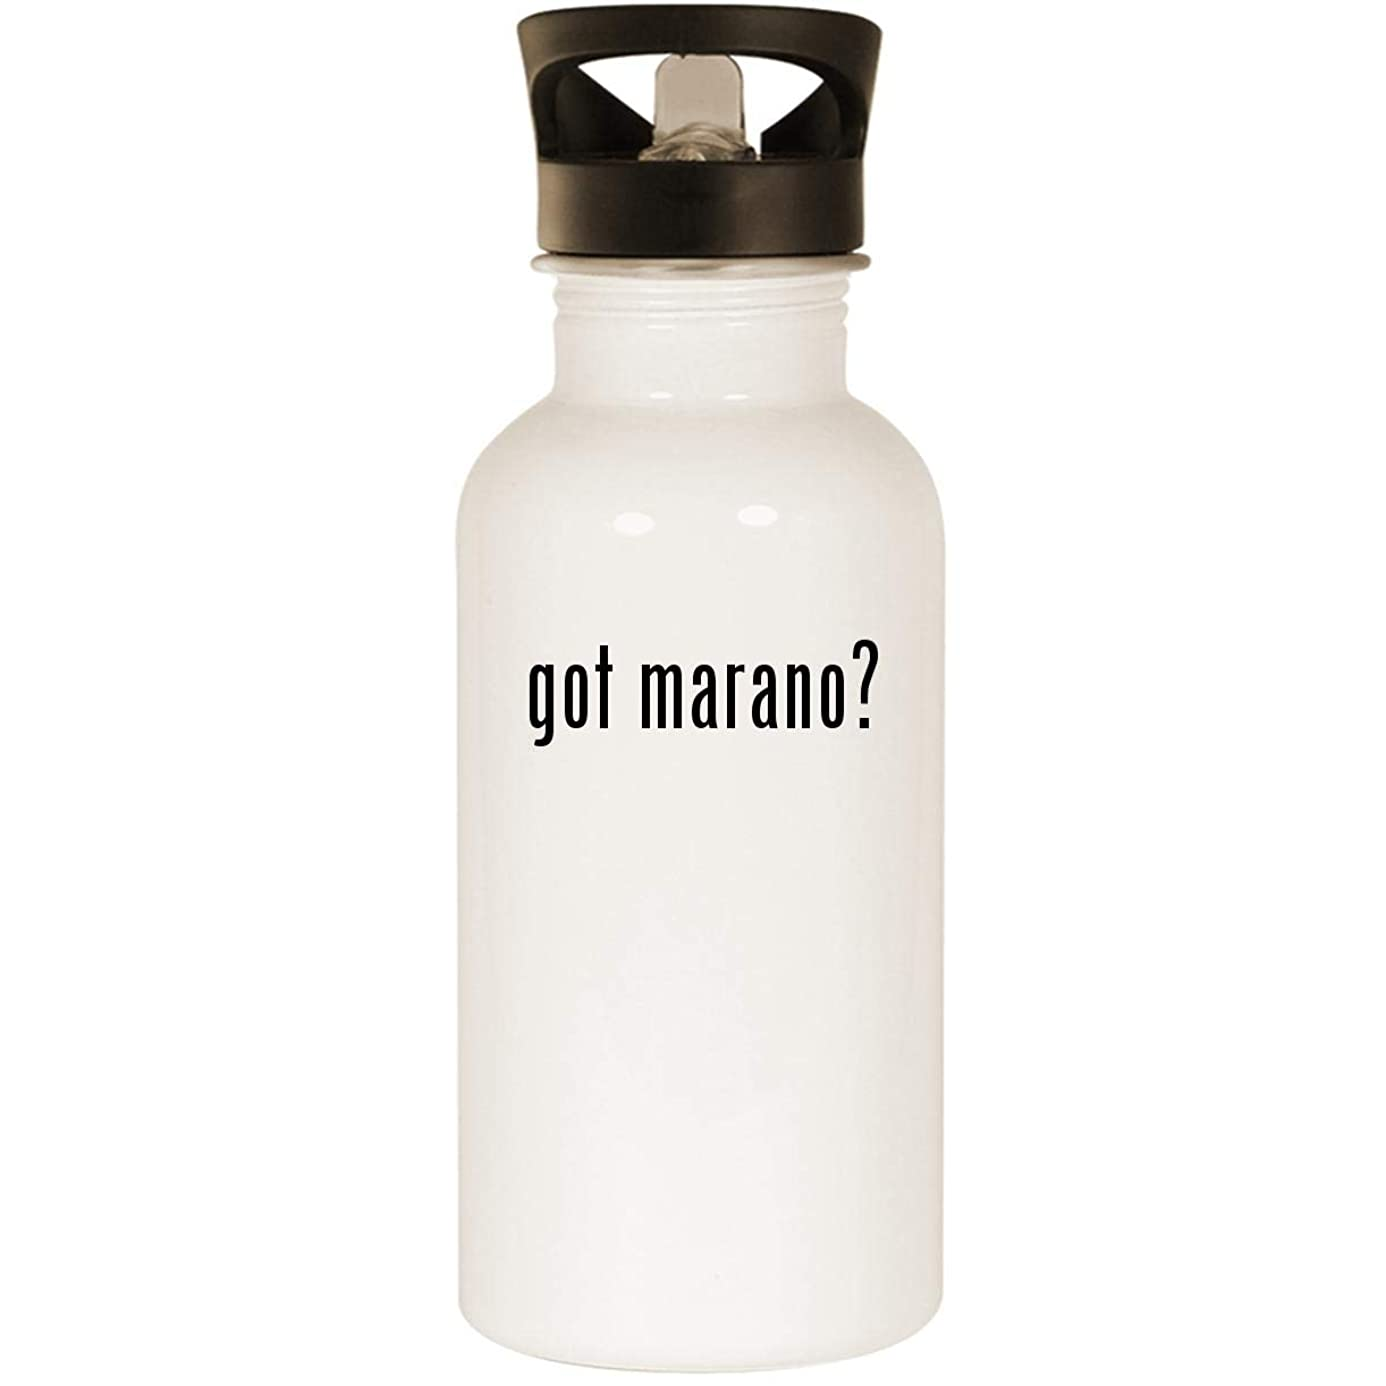 got marano? - Stainless Steel 20oz Road Ready Water Bottle, White